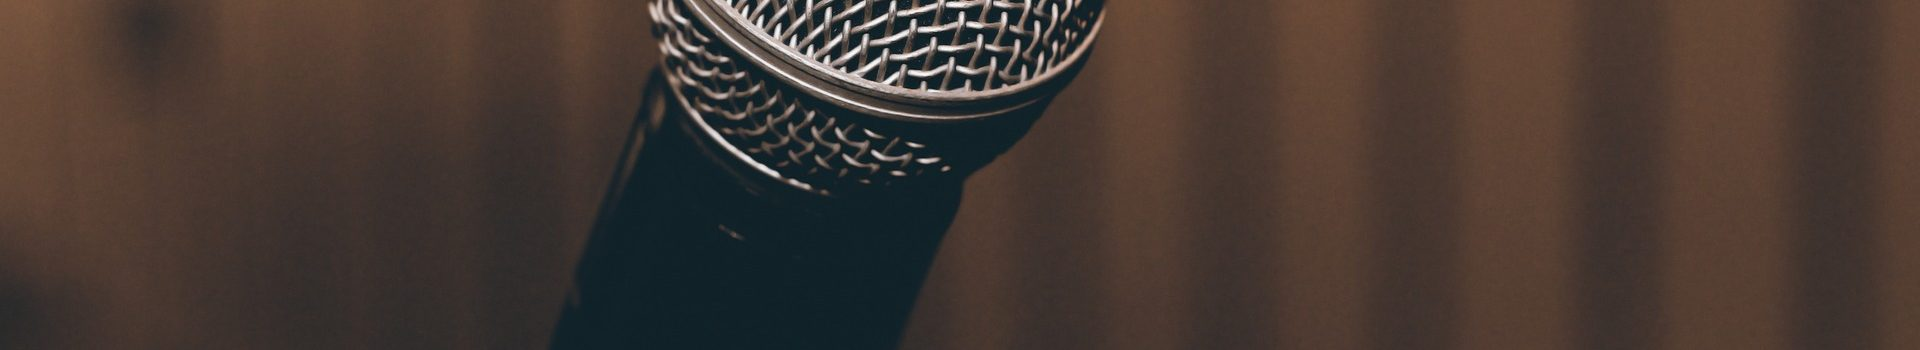 microphone-1206362_1920